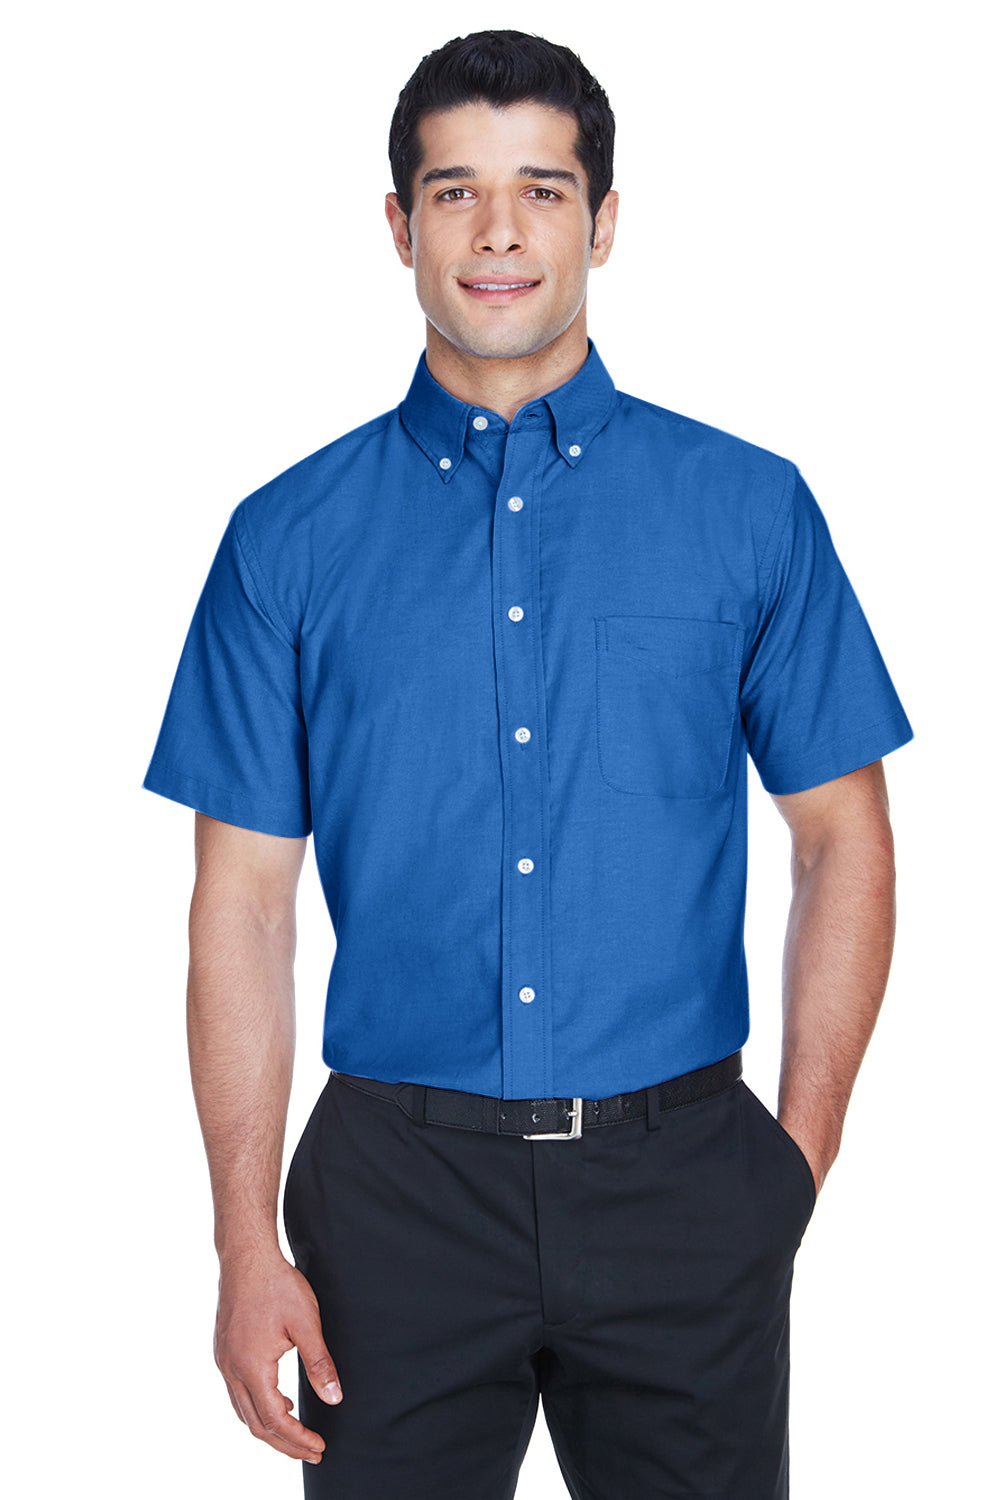 Harriton M600S Mens Oxford Wrinkle Resistant Short Sleeve Button Down Shirt w/ Pocket French Blue Front